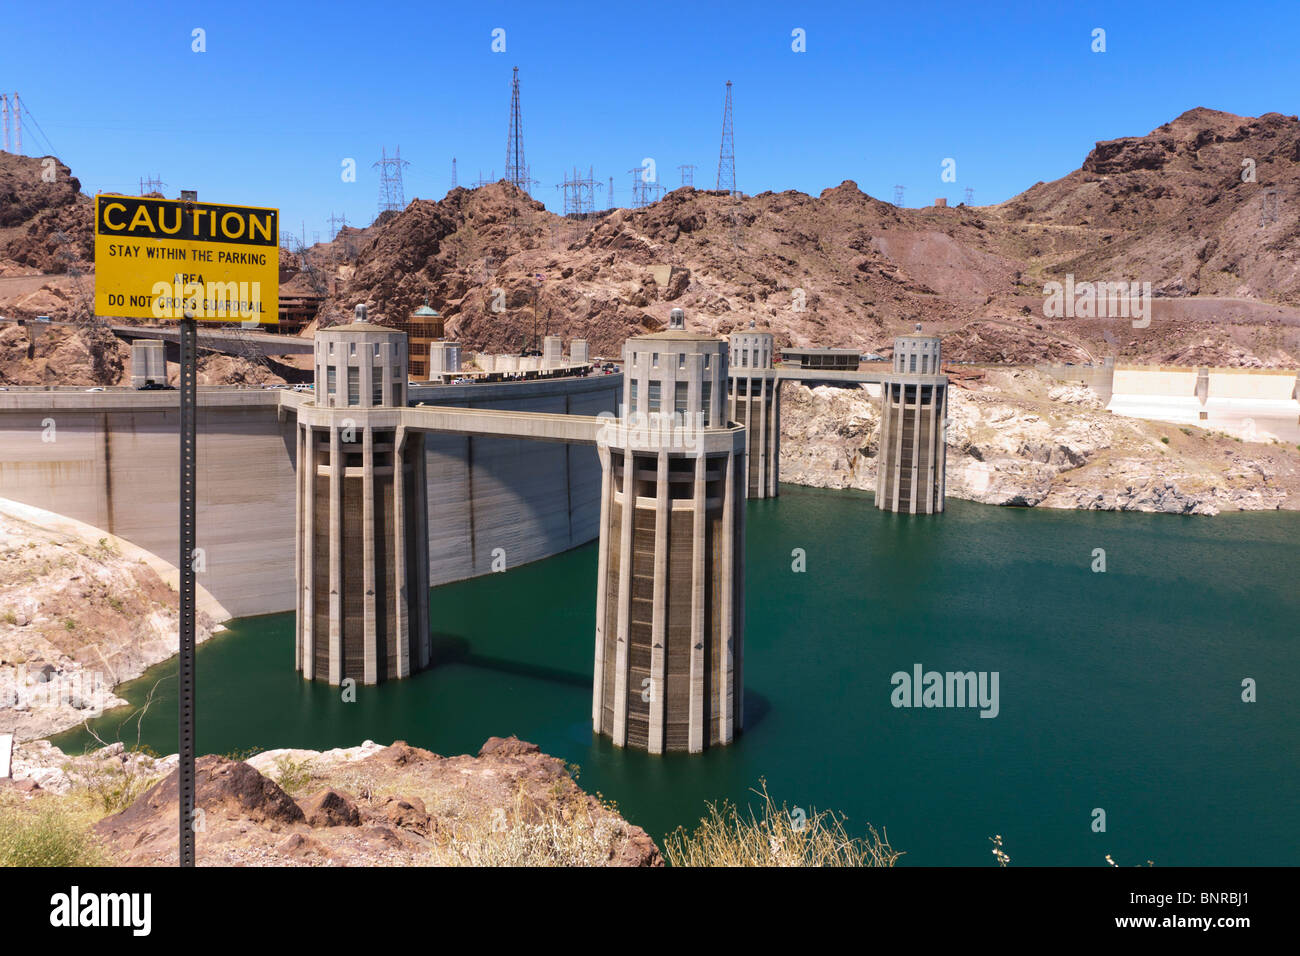 USA Nevada/Arizona border - Hoover Dam on the Colorado River, Lake Mead. Warning sign. Drought low water June 2010. Stock Photo